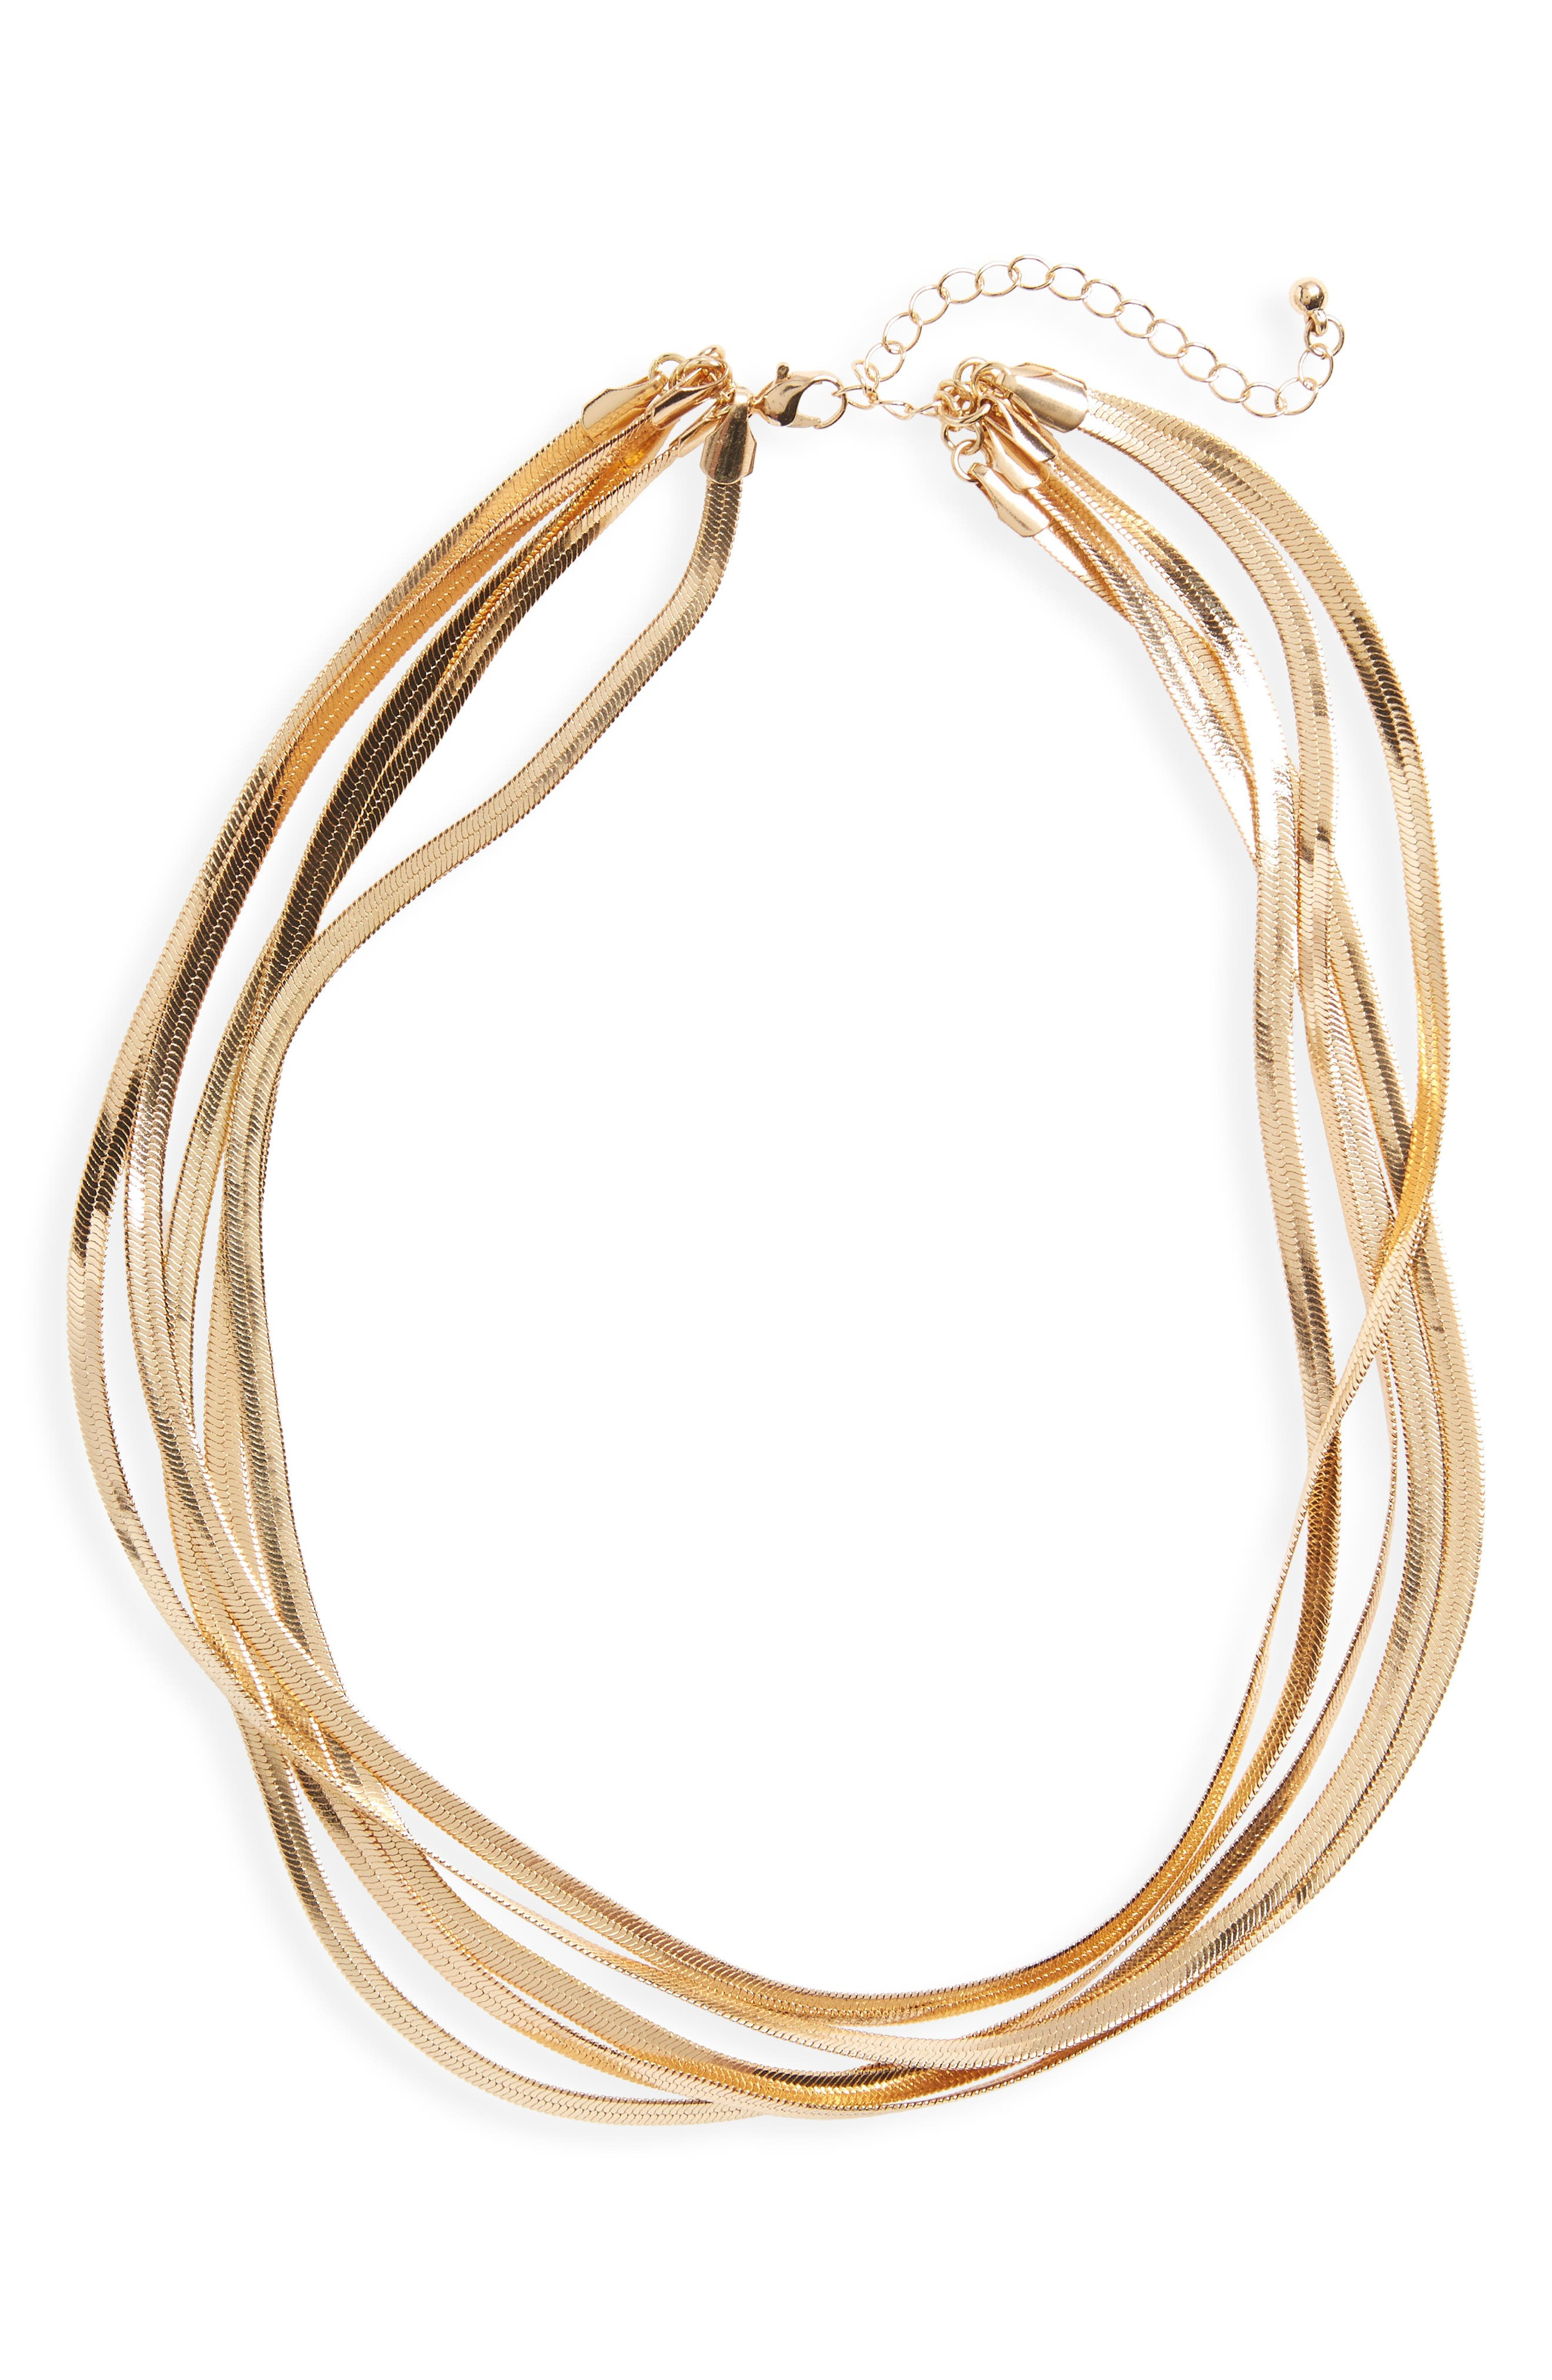 Layered Snake Chain Necklace,                             Main thumbnail 1, color,                             Gold